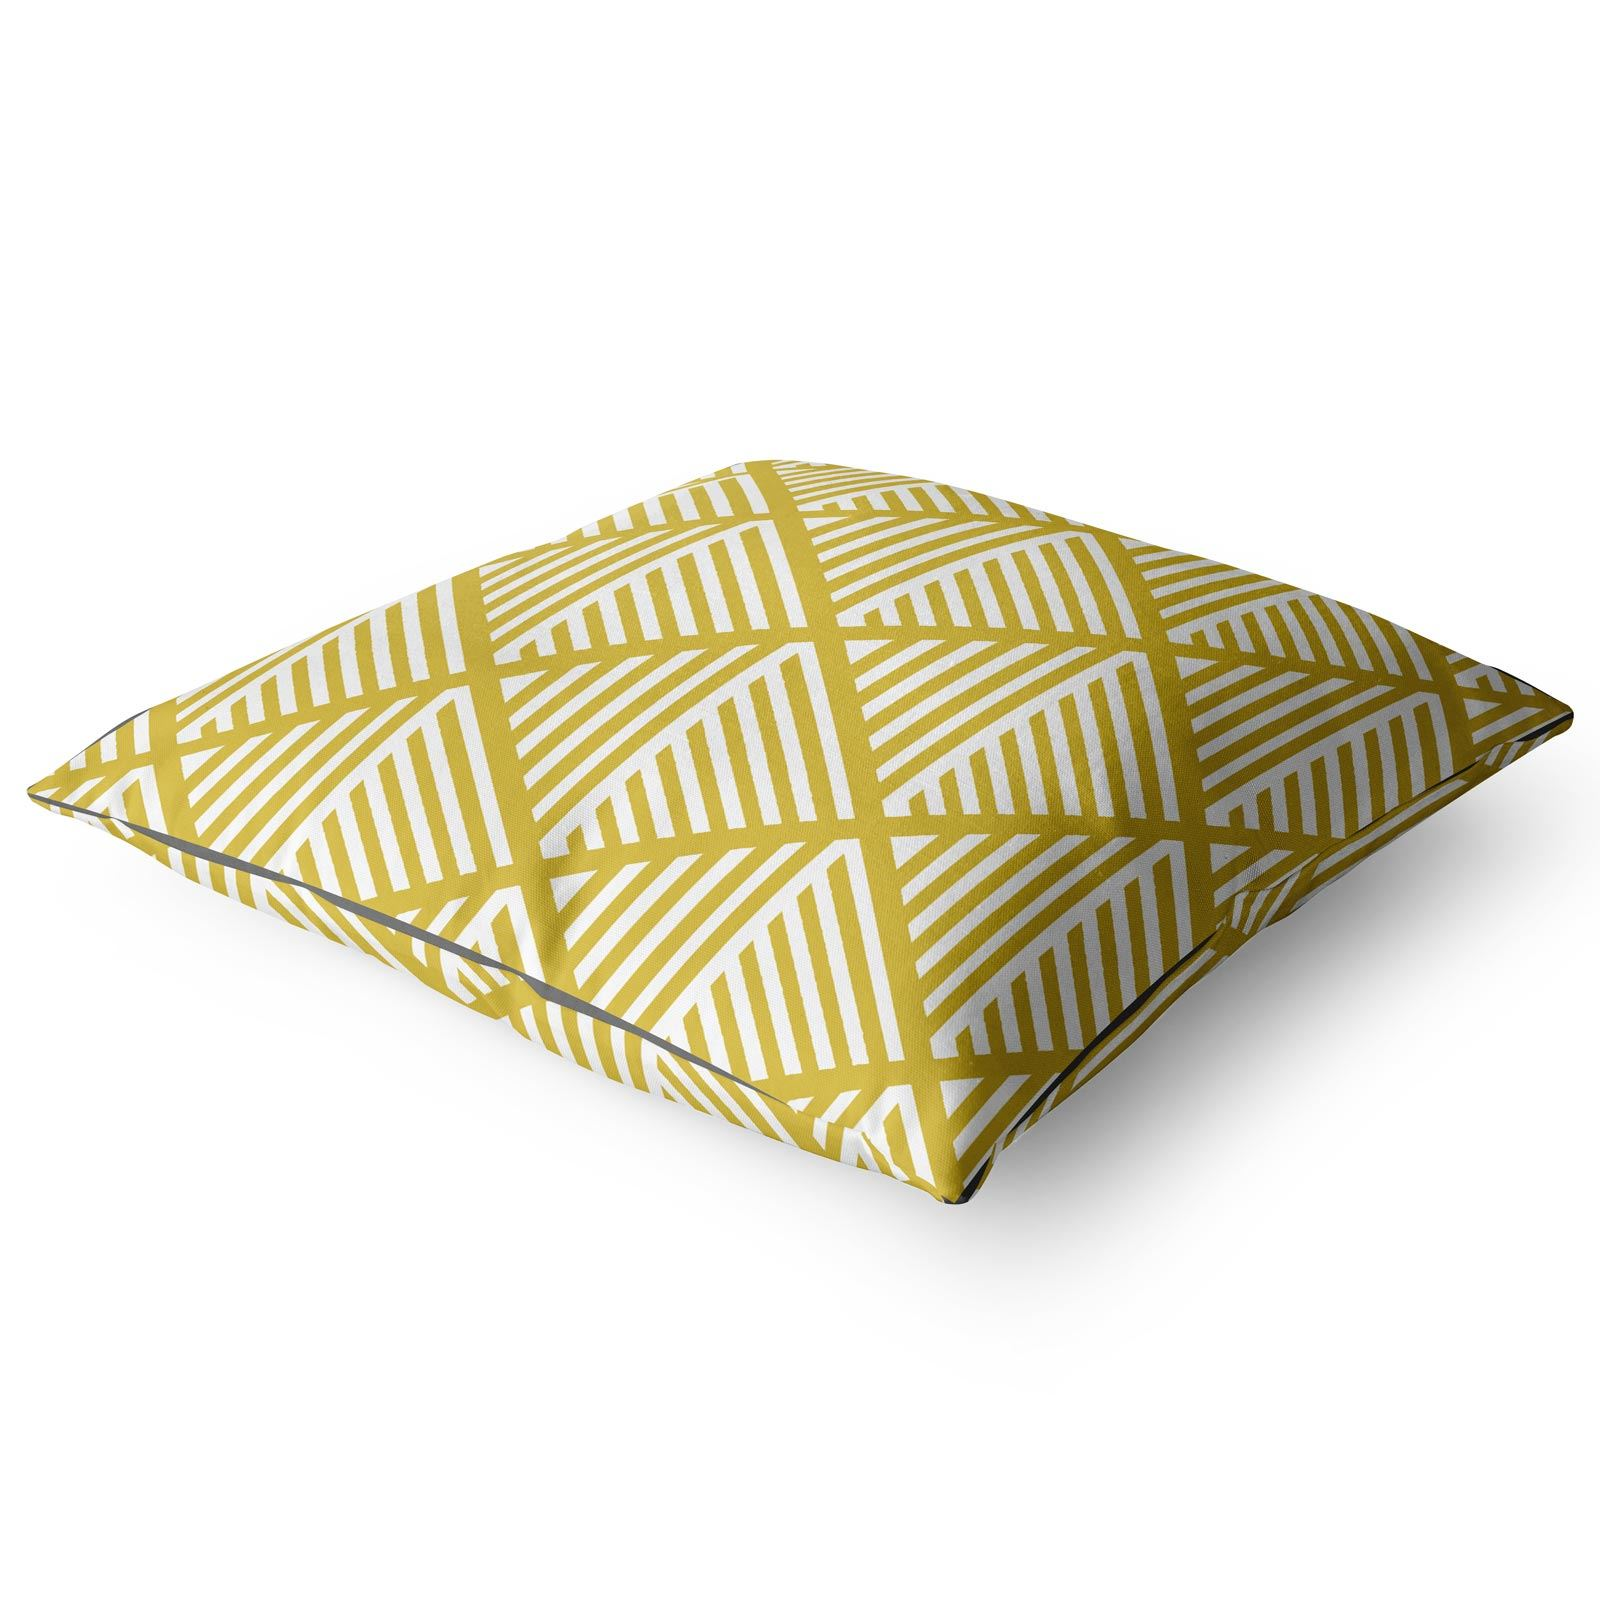 Grey-Ochre-Mustard-Cushion-Cover-Collection-17-034-18-034-Covers-Filled-Cushions thumbnail 39